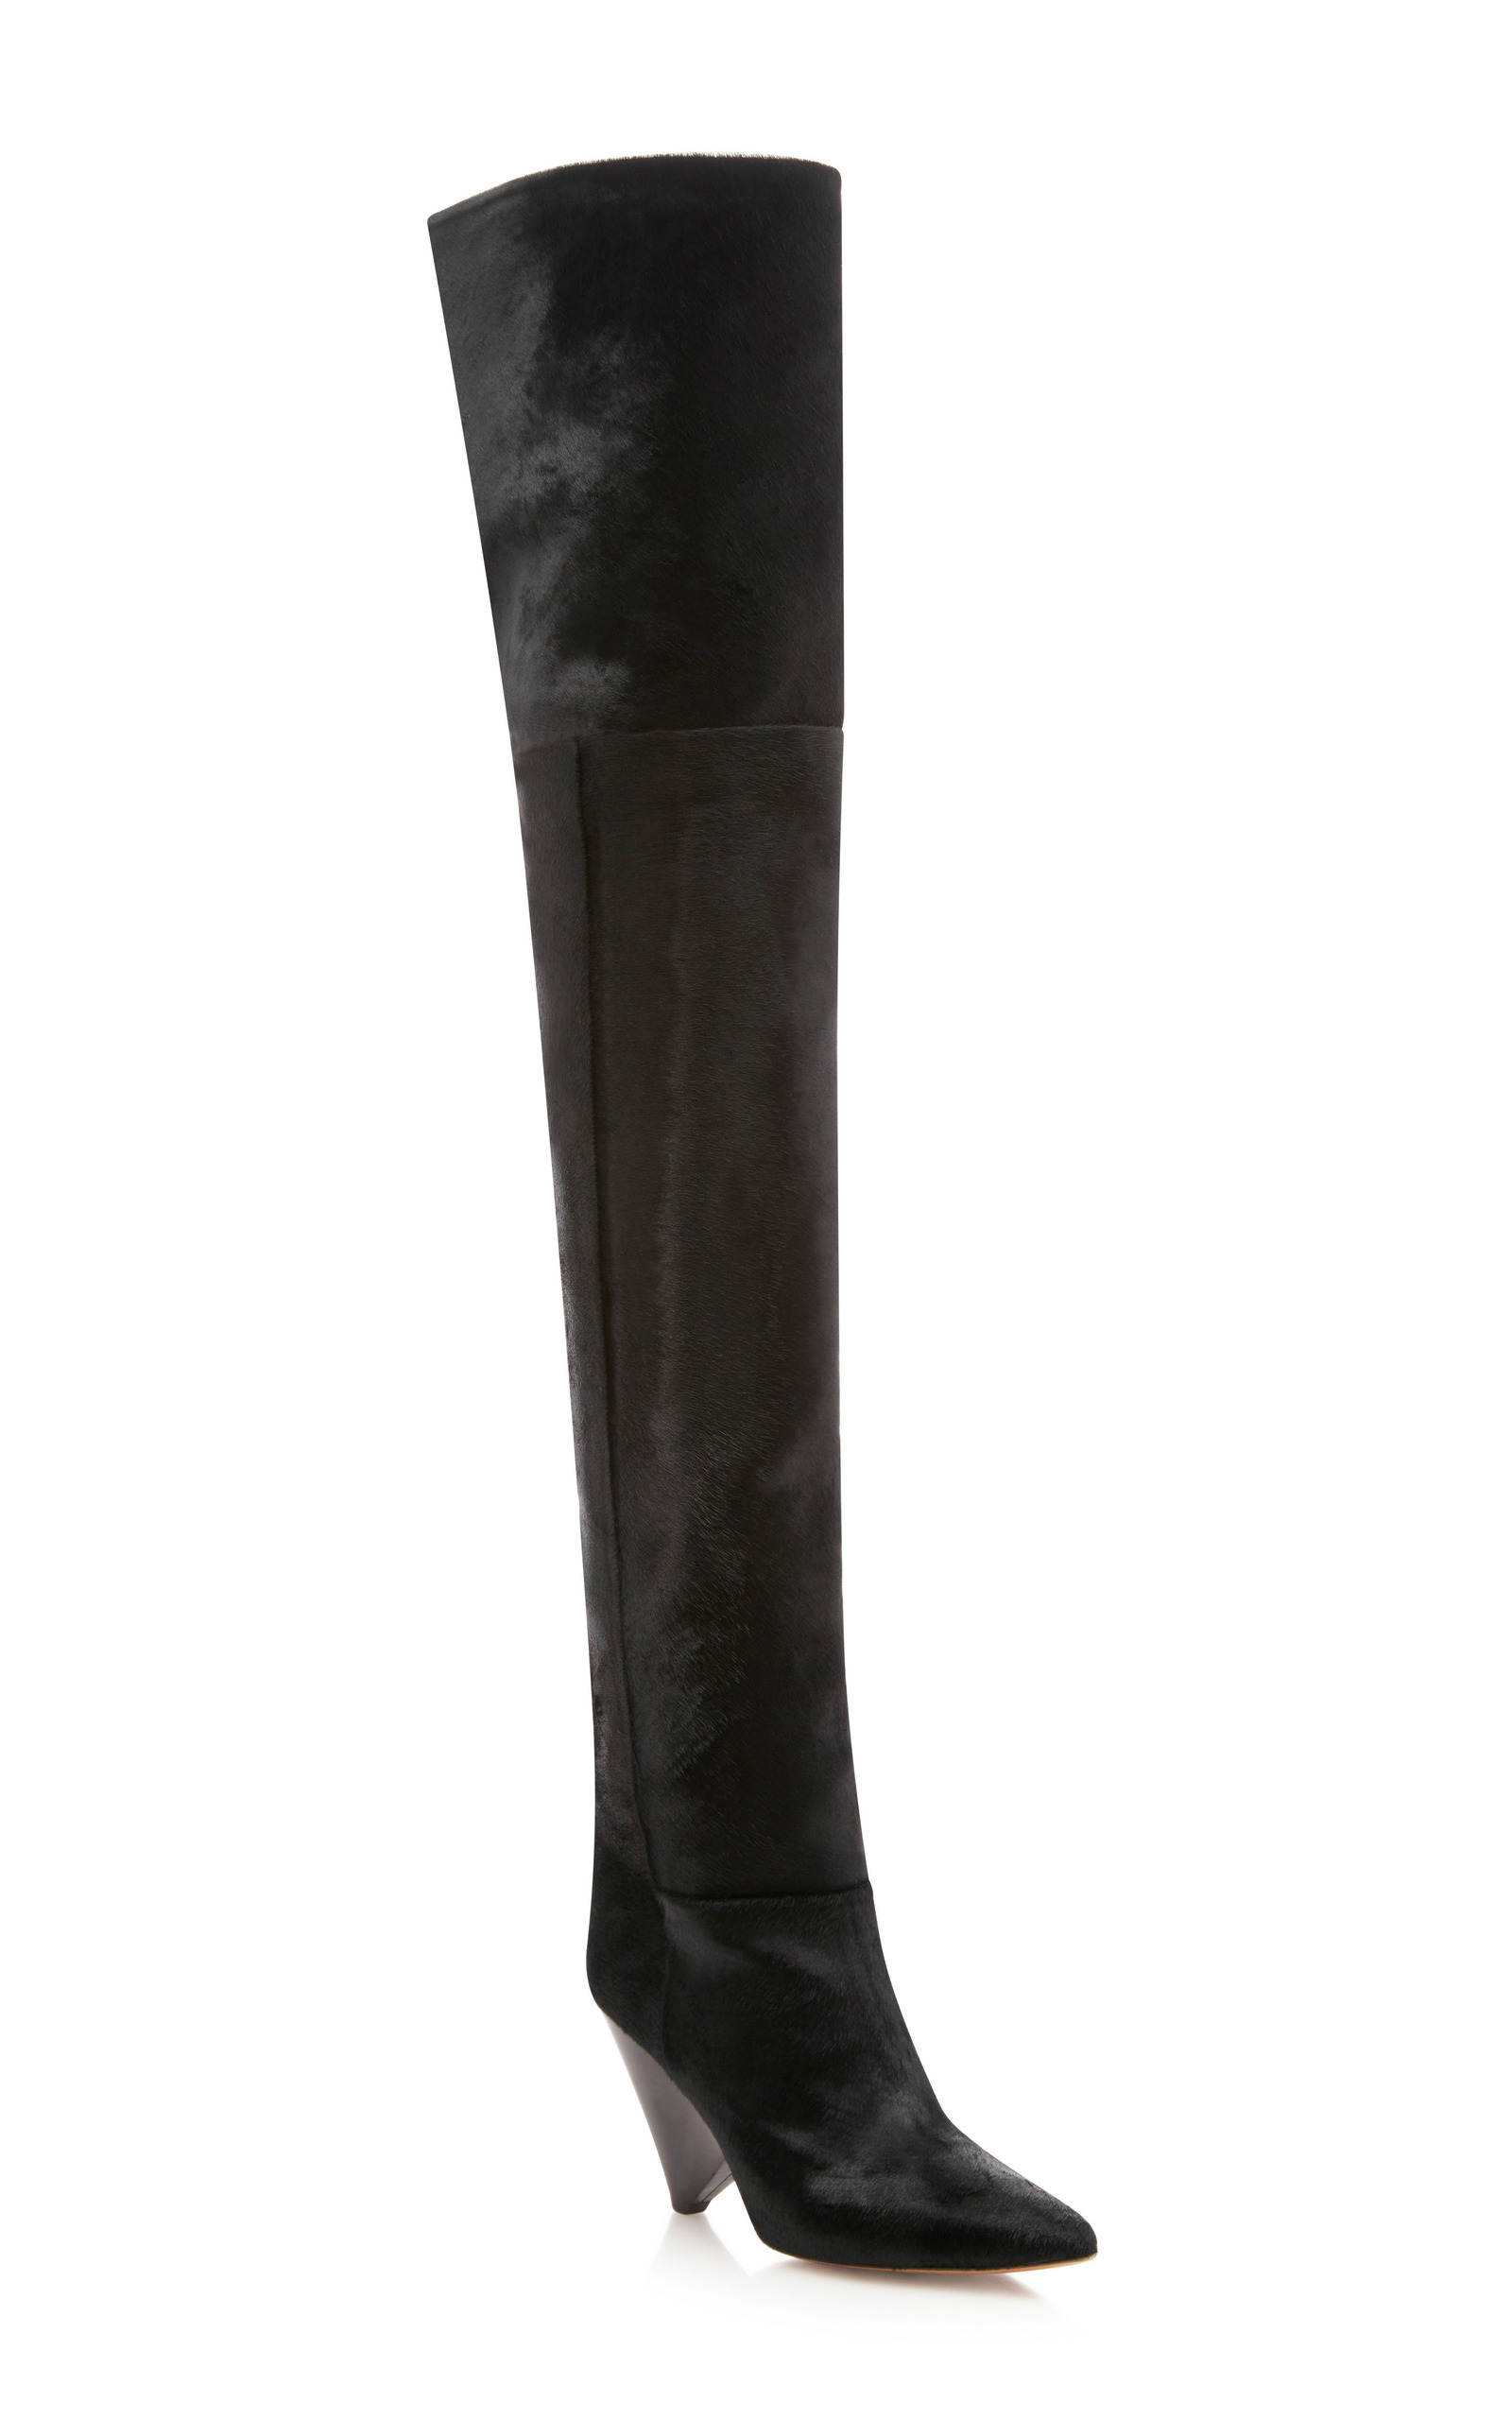 9a11d4f4436 Isabel MarantLostynn Calf Hair Boot. CLOSE. Loading